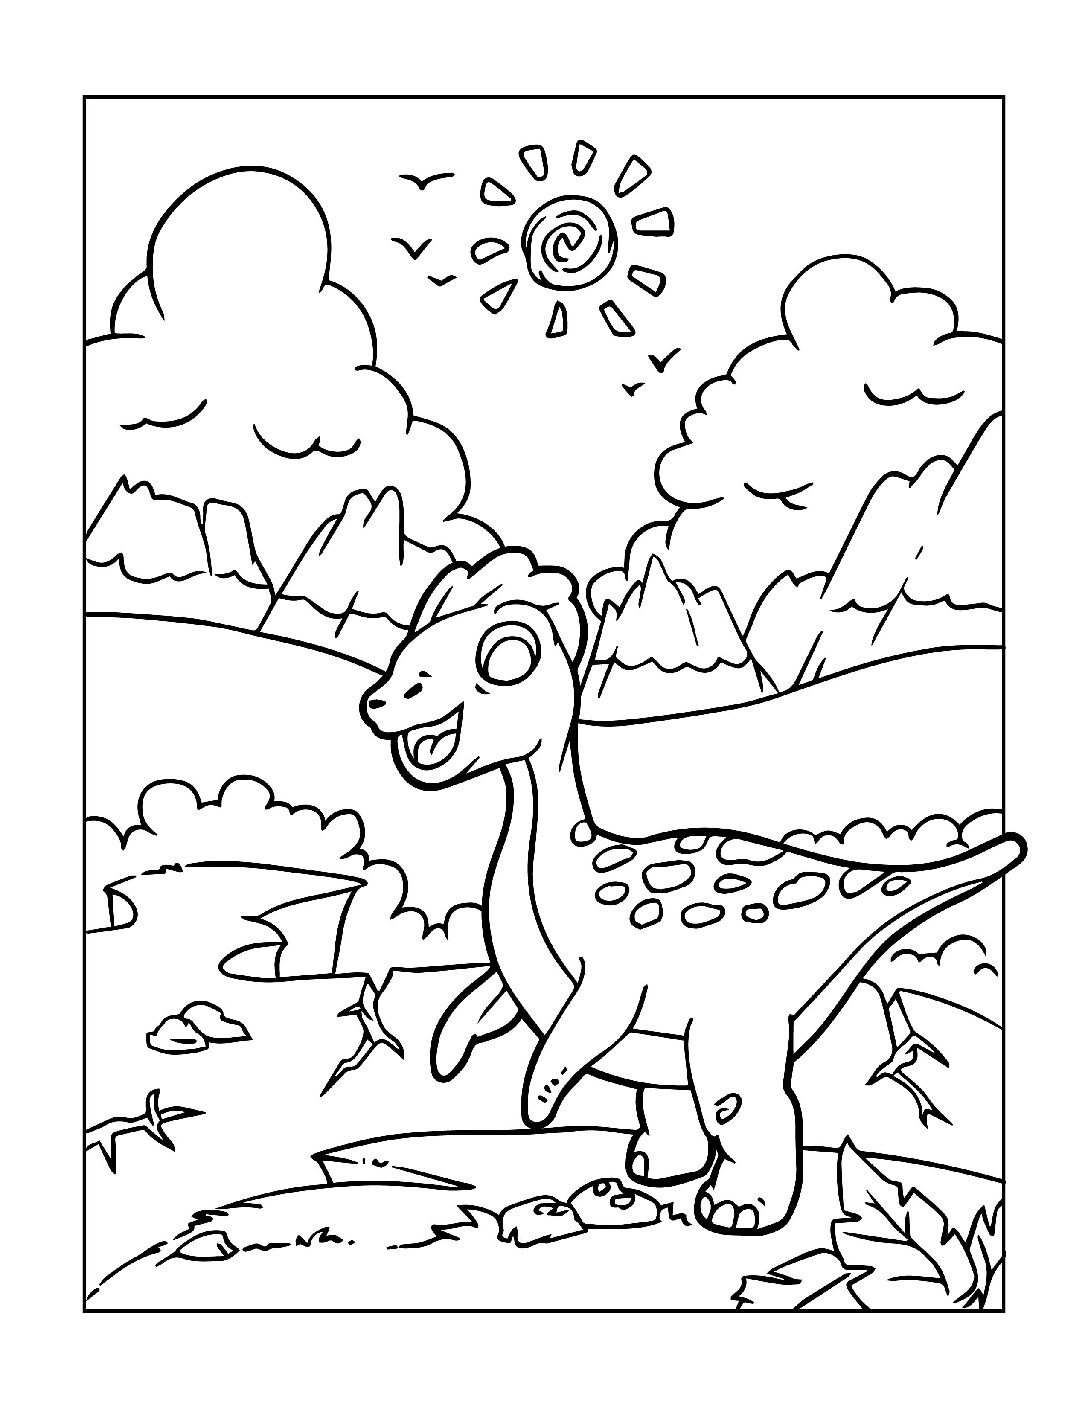 Coloring-Pages-Dinosaur-11-pdf Free Printable Dinasour Colouring Pages